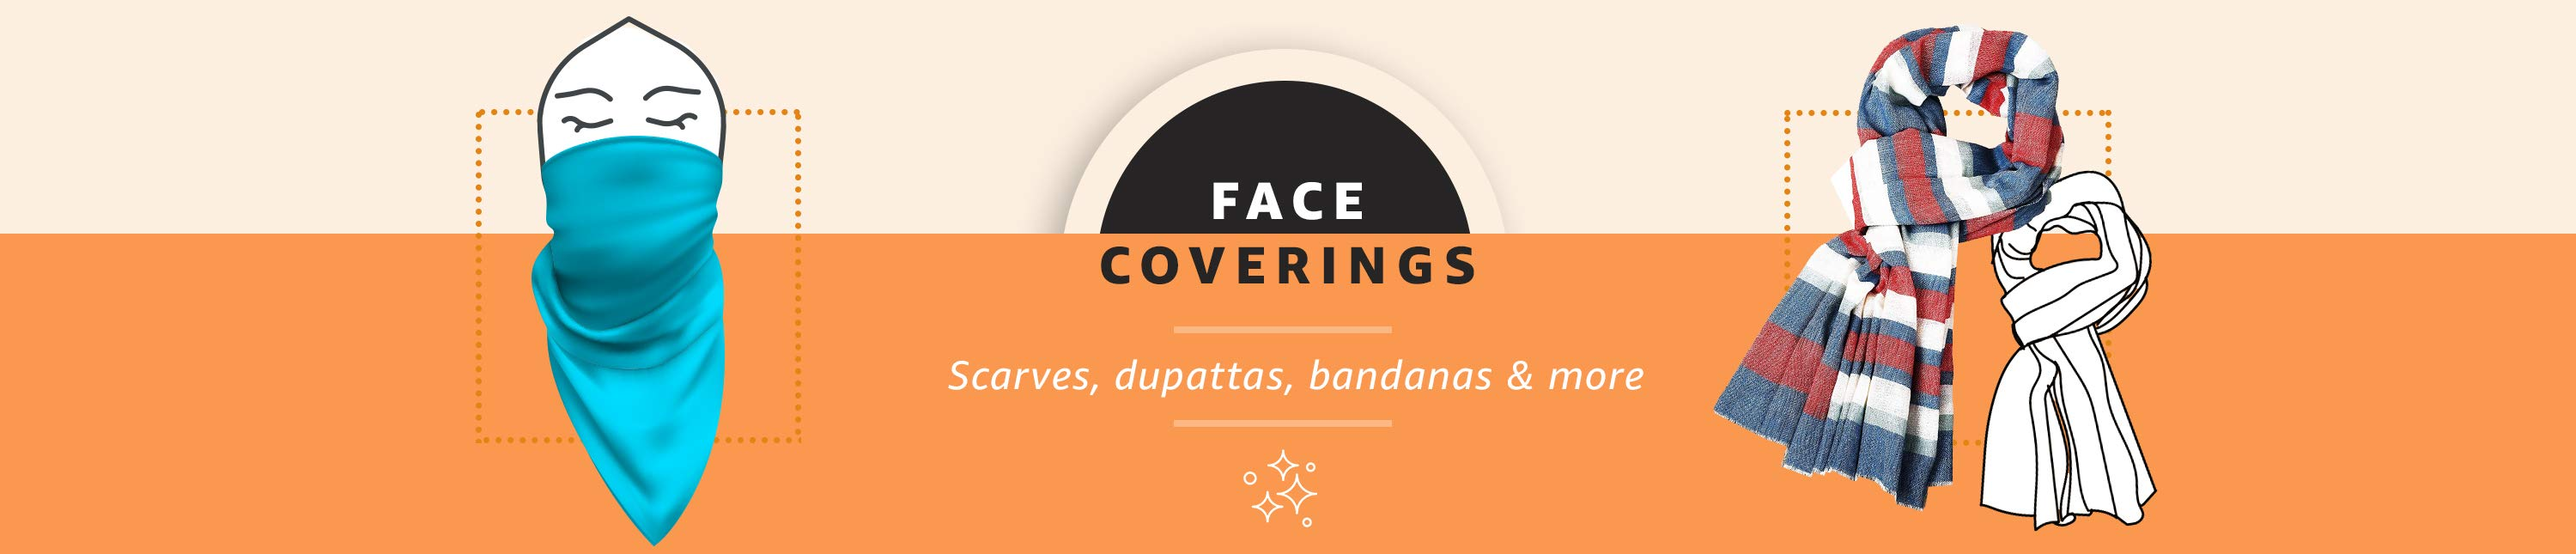 Face Cover Desk